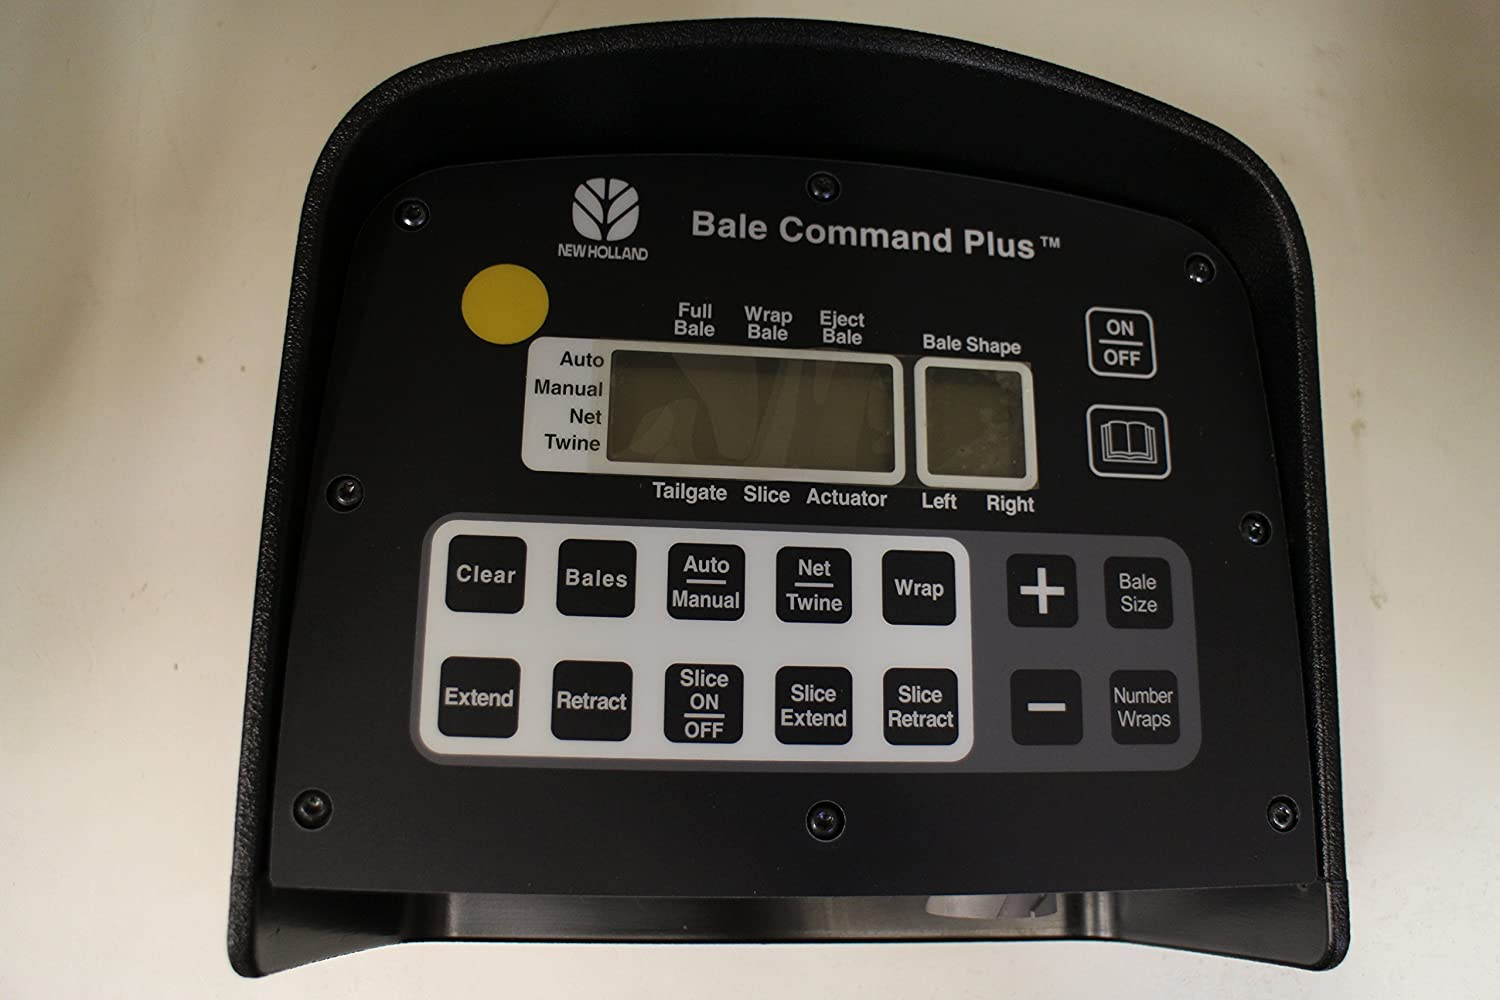 Bale Command Plus Wiring Harness 32 Diagram Images New Holland Sl1500 Amazon Com Electric Monitor For 600 And Br Series